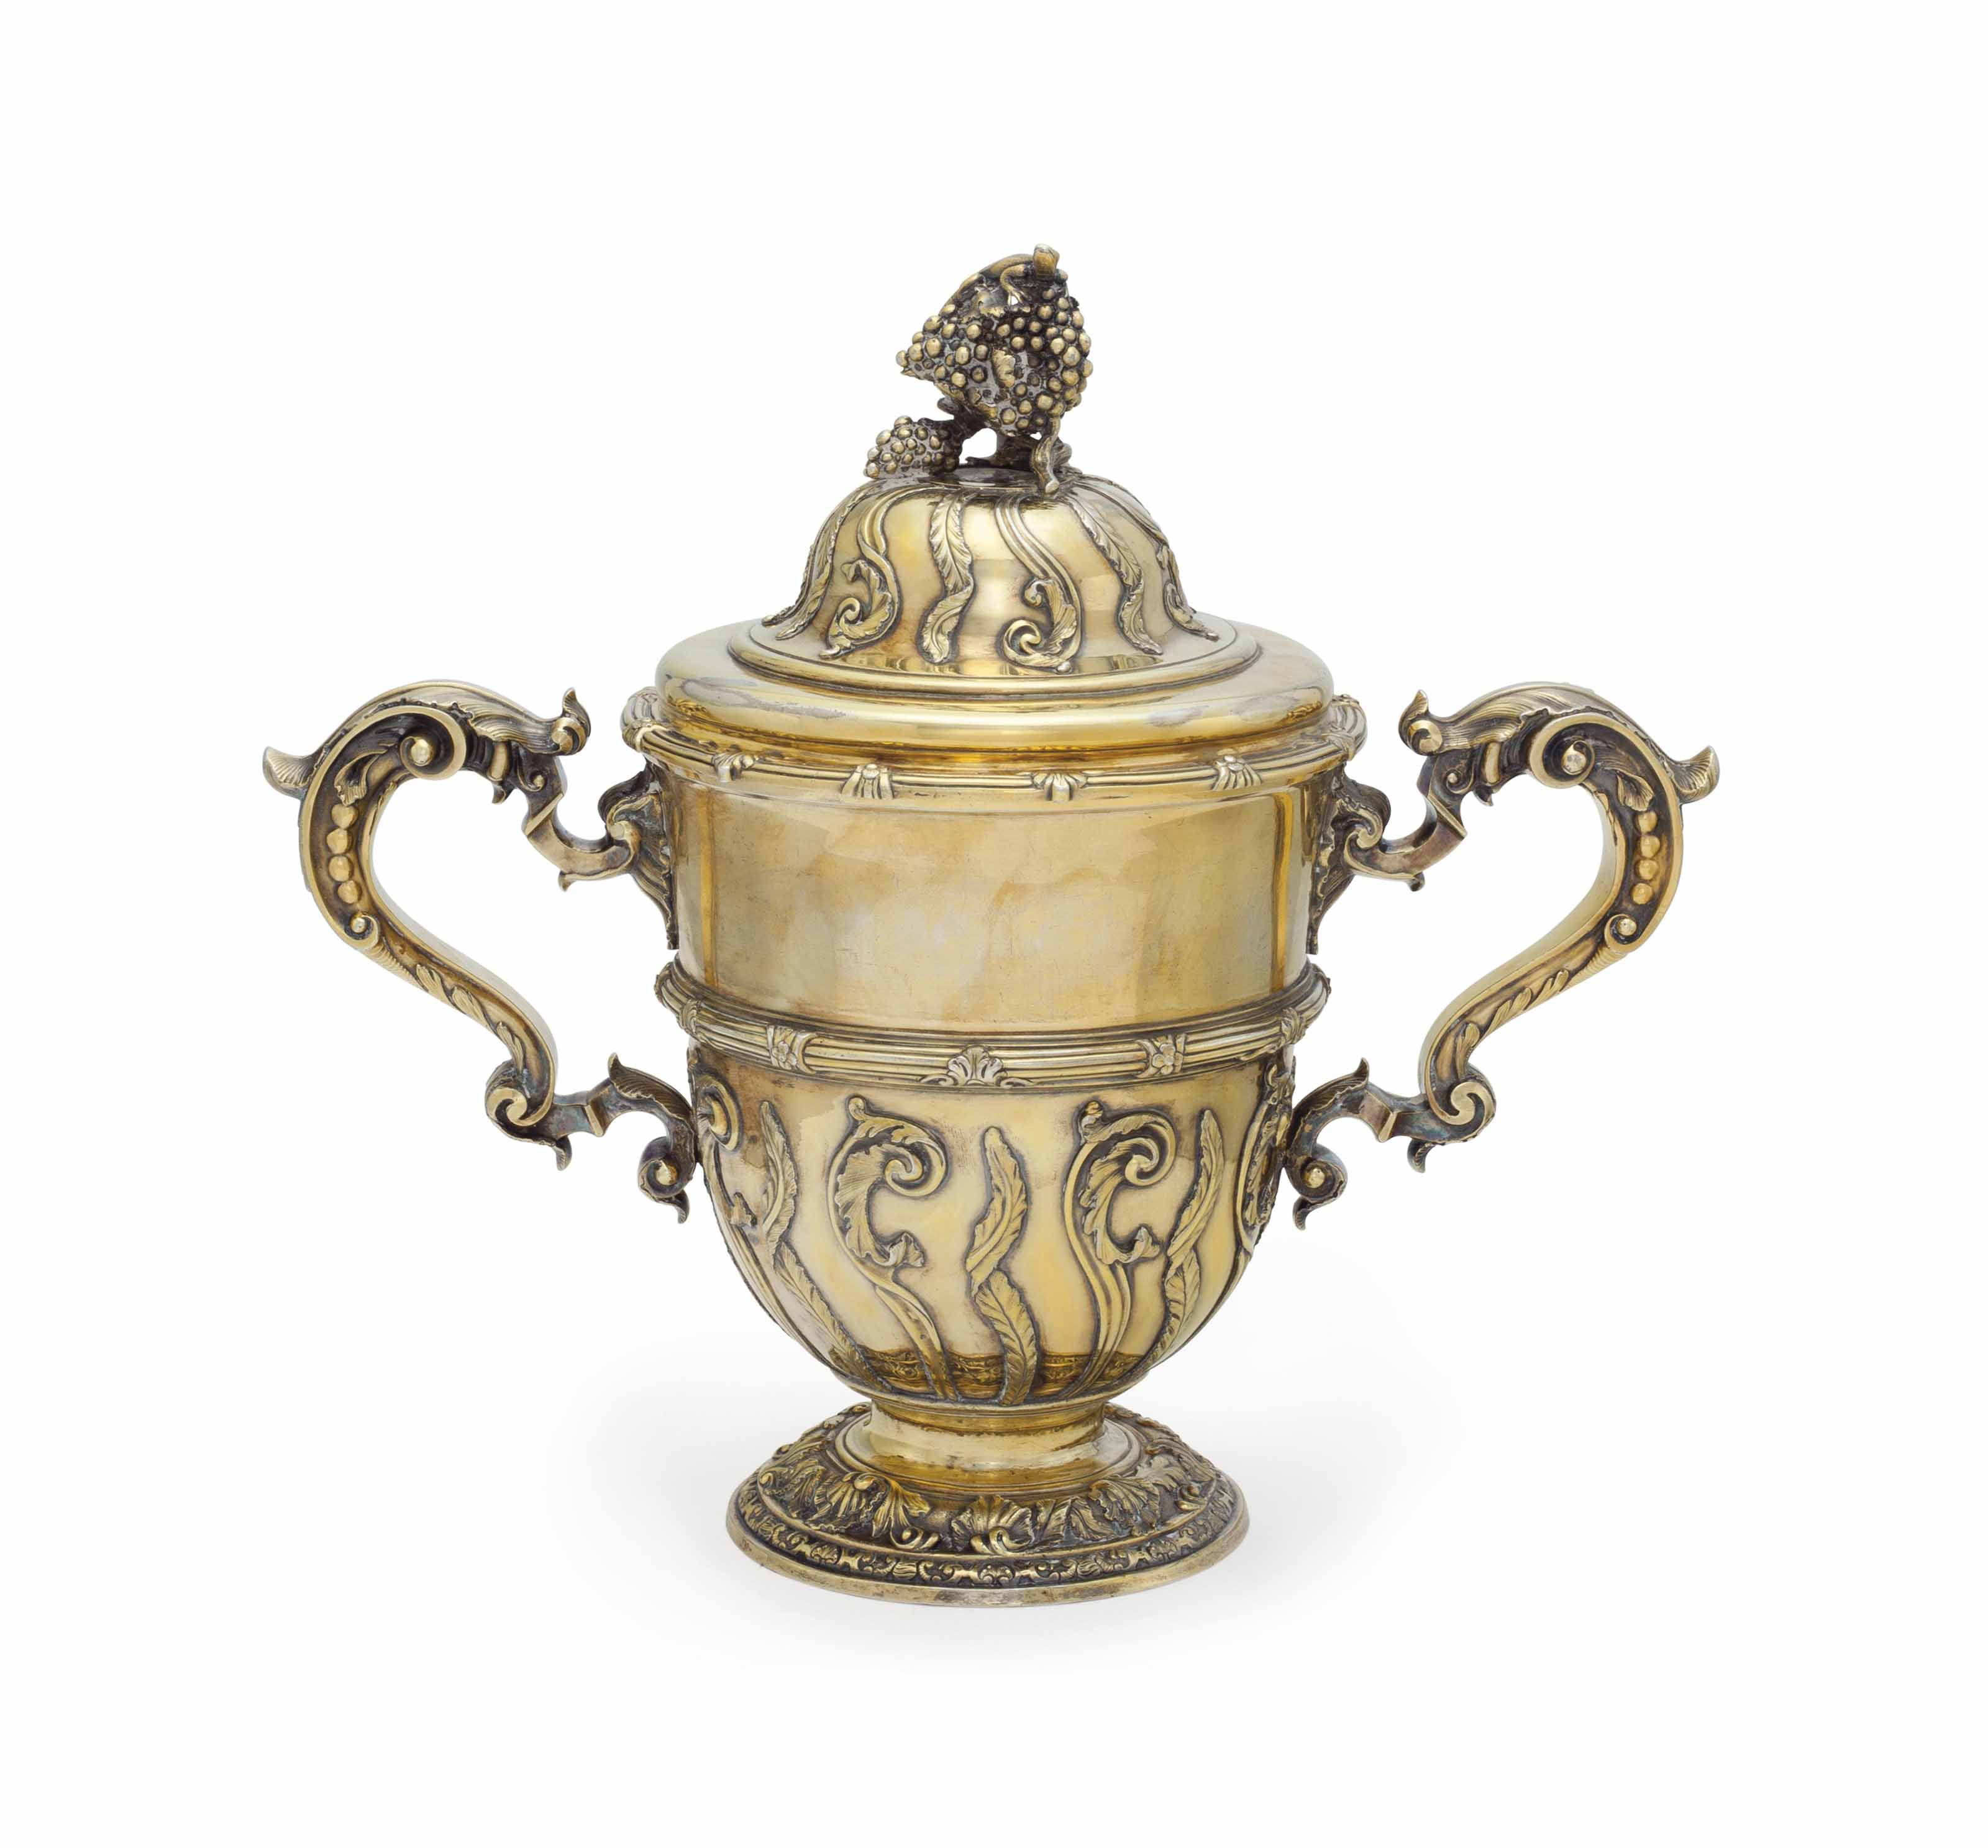 A GEORGE II SILVER-GILT TWO-HANDLED CUP AND COVER